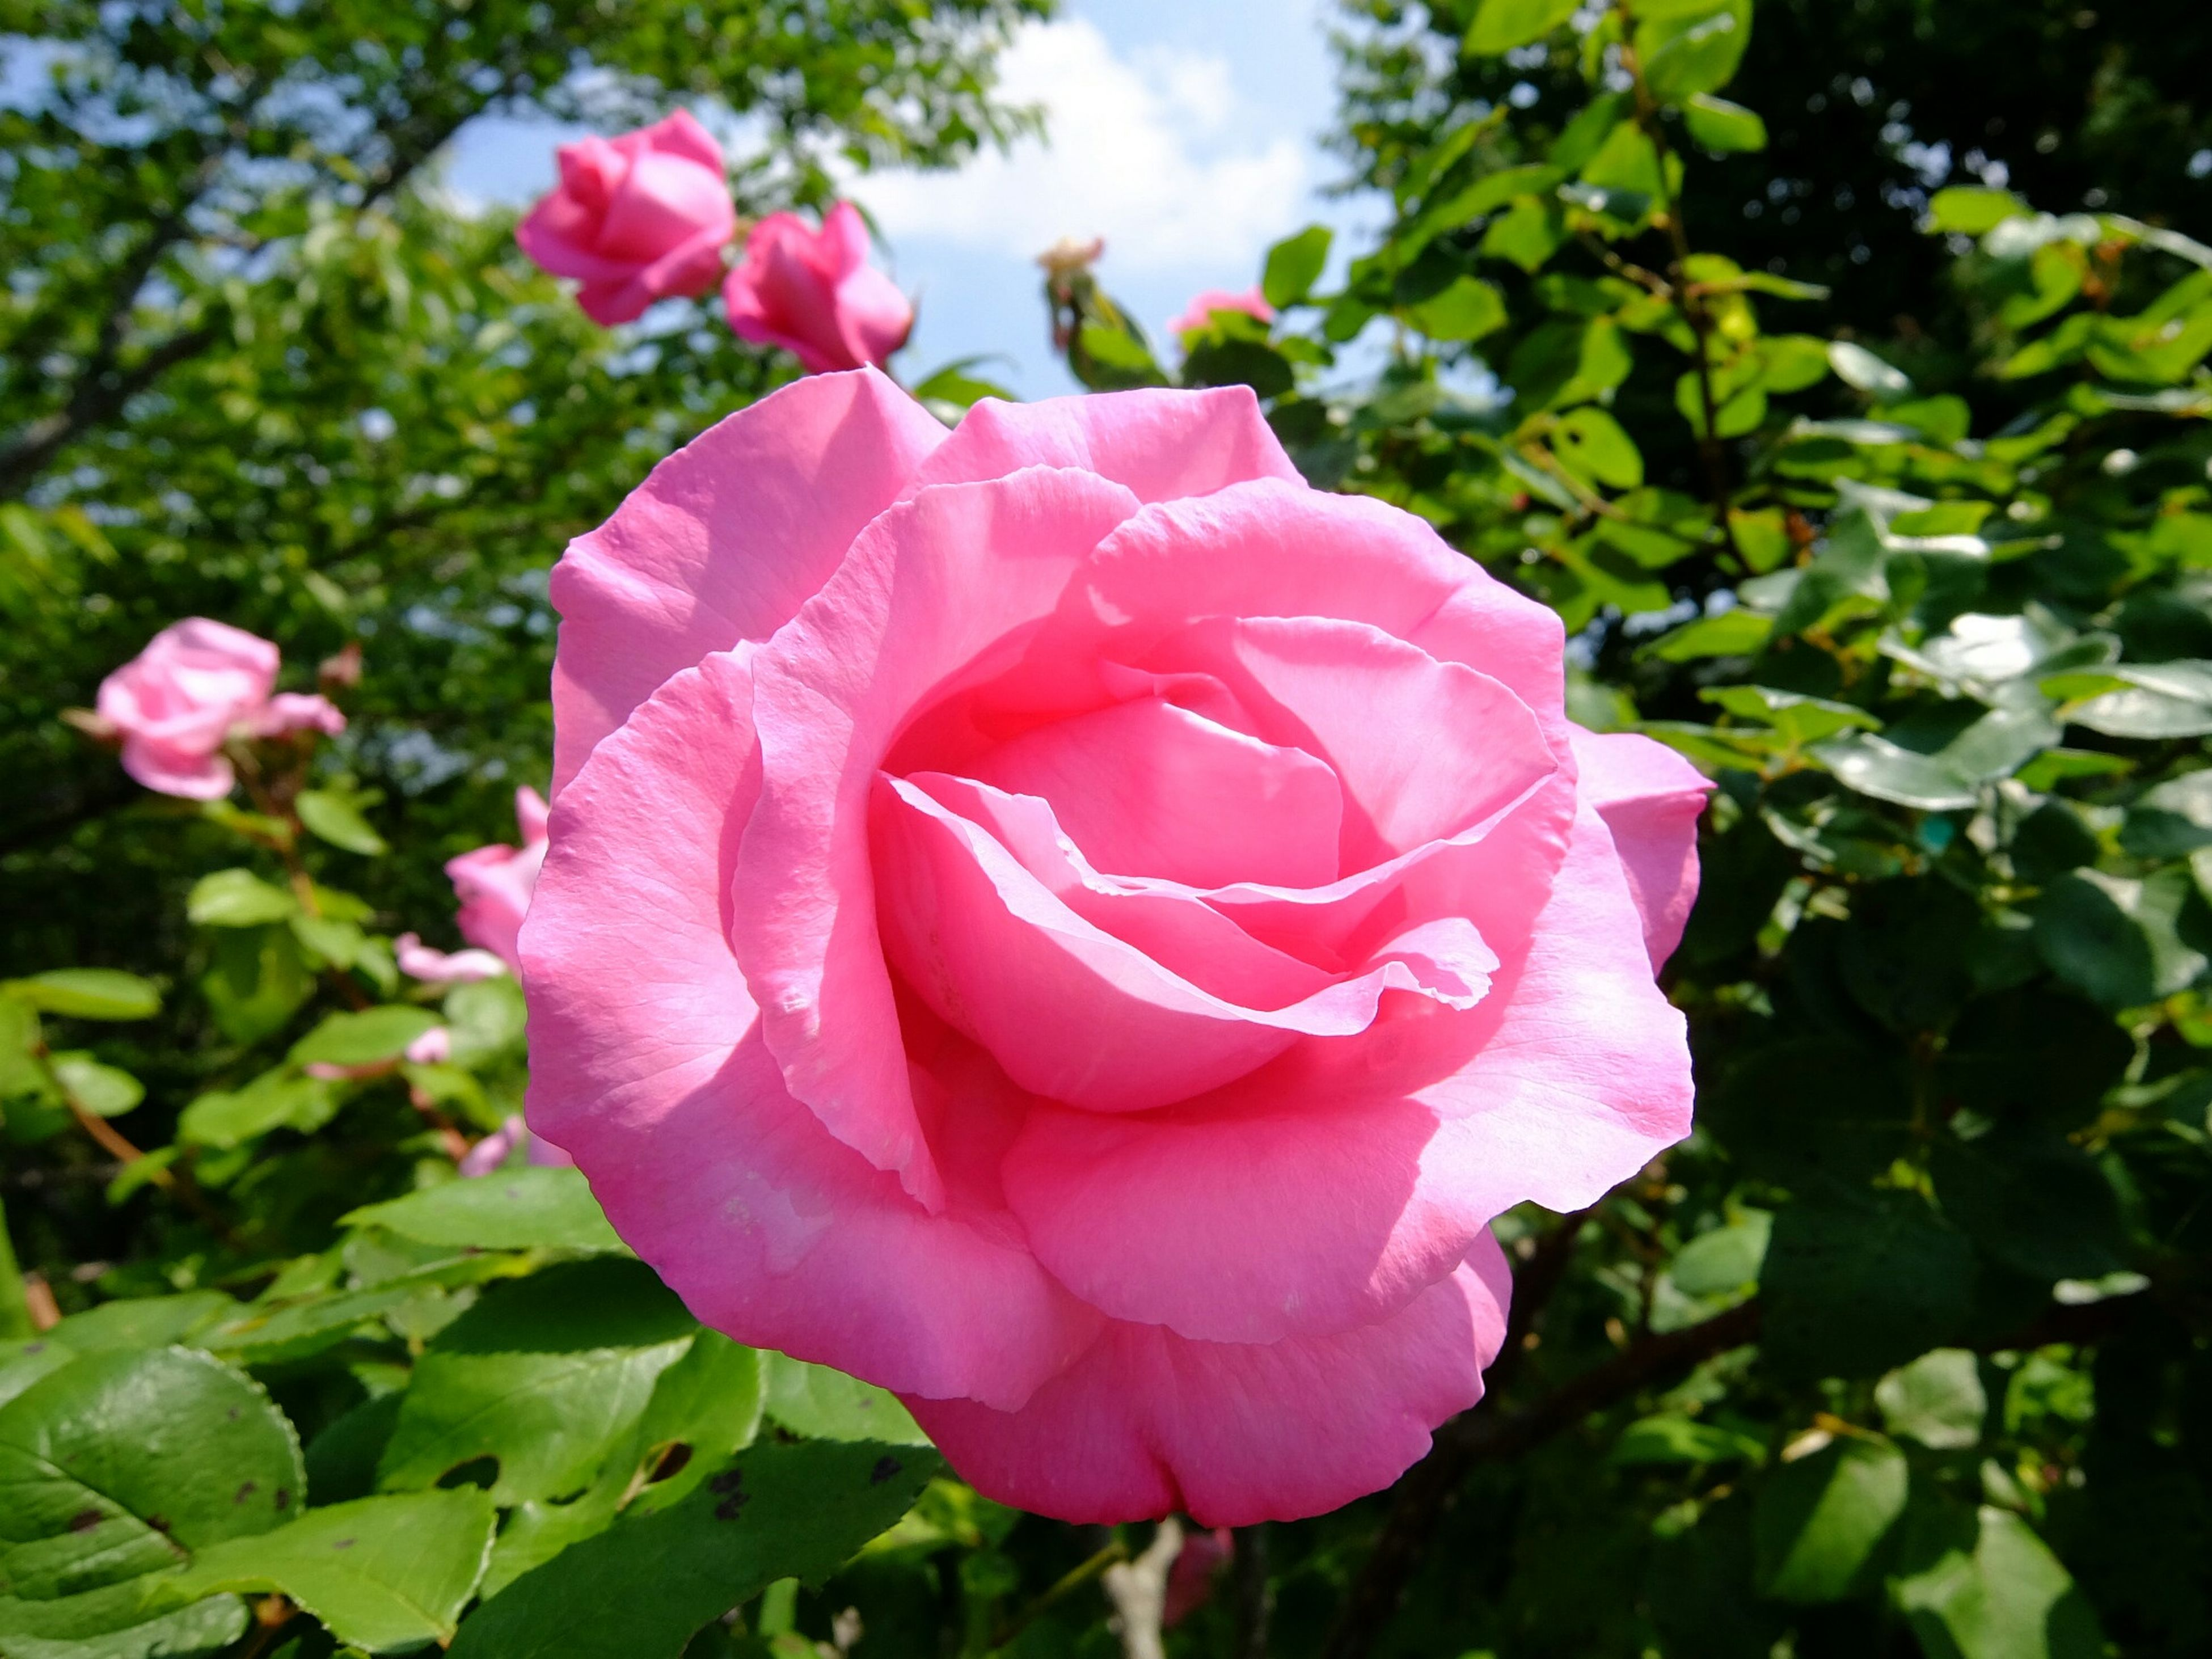 flower, petal, freshness, pink color, fragility, flower head, growth, beauty in nature, rose - flower, close-up, blooming, nature, leaf, focus on foreground, plant, pink, park - man made space, in bloom, day, single flower